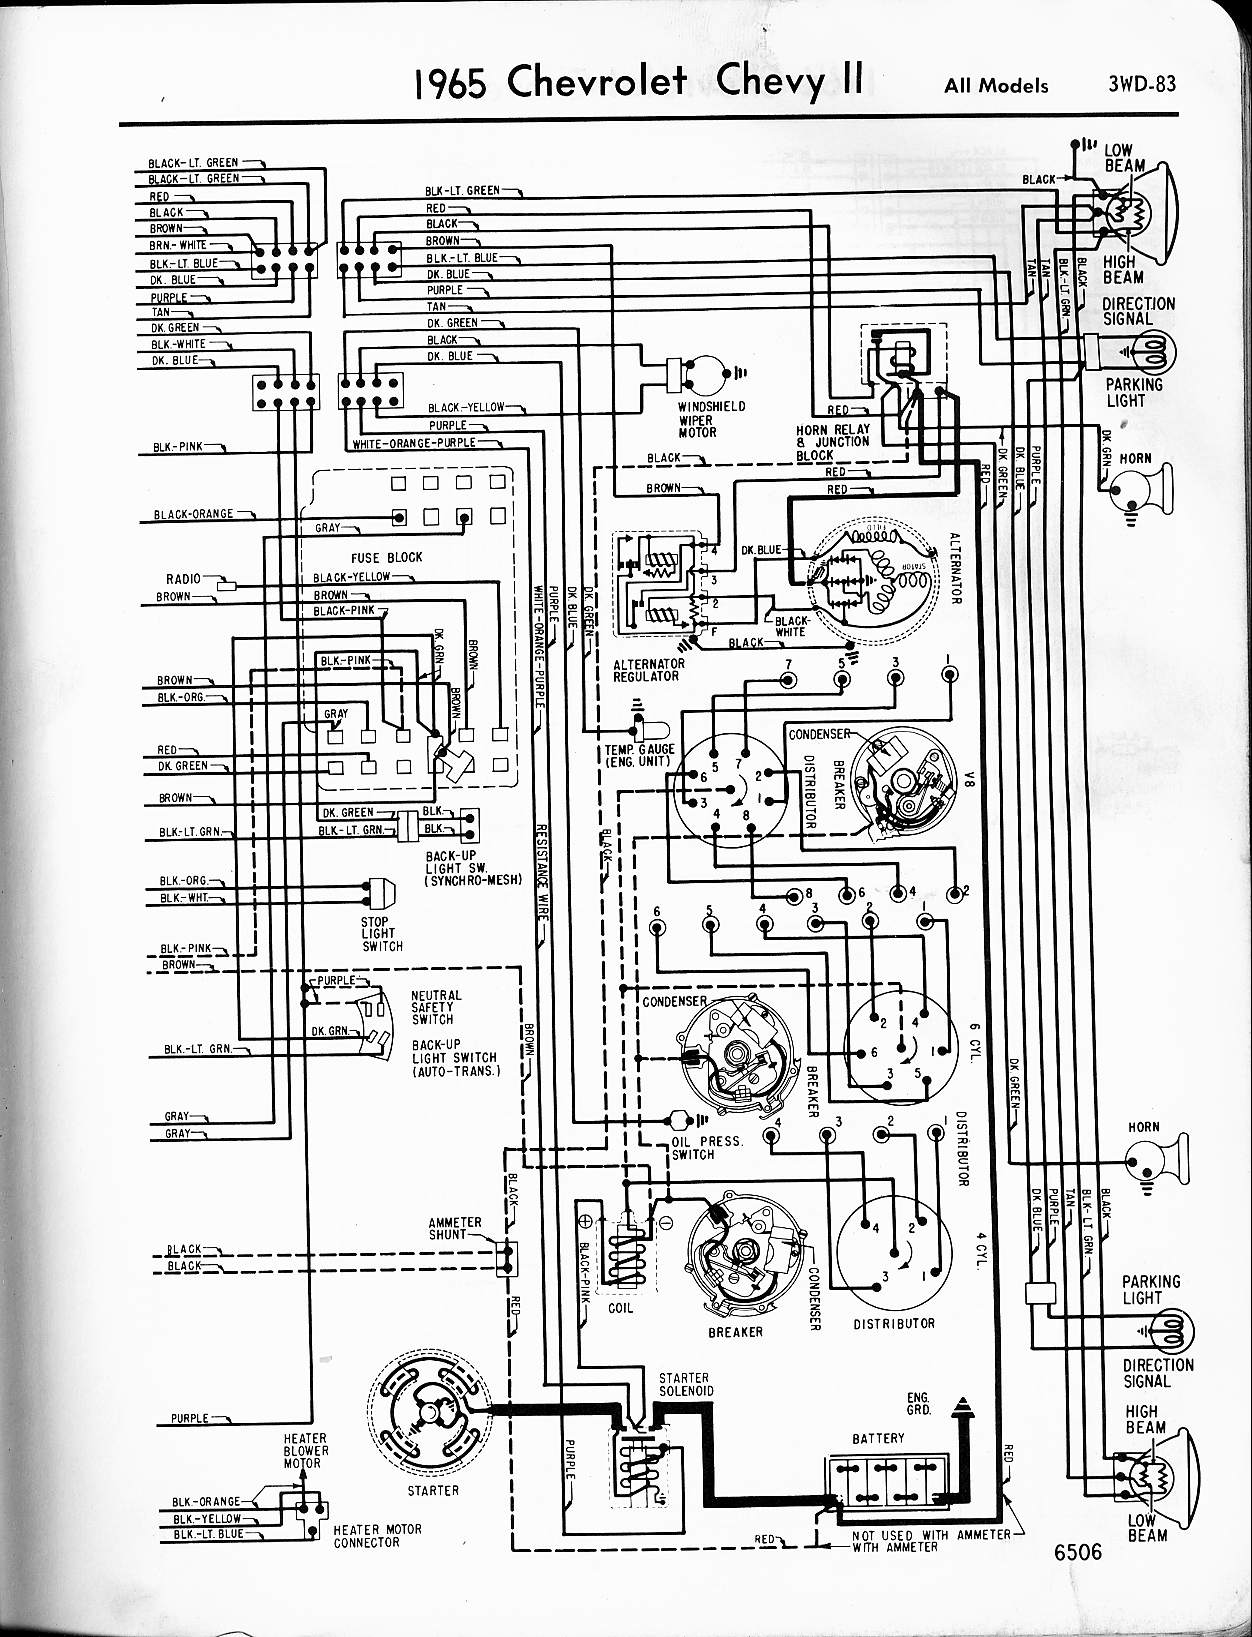 MWireChev65_3WD 083 66 chevelle wiring schematics free download diagram schematic 65 comet wiring harness at pacquiaovsvargaslive.co